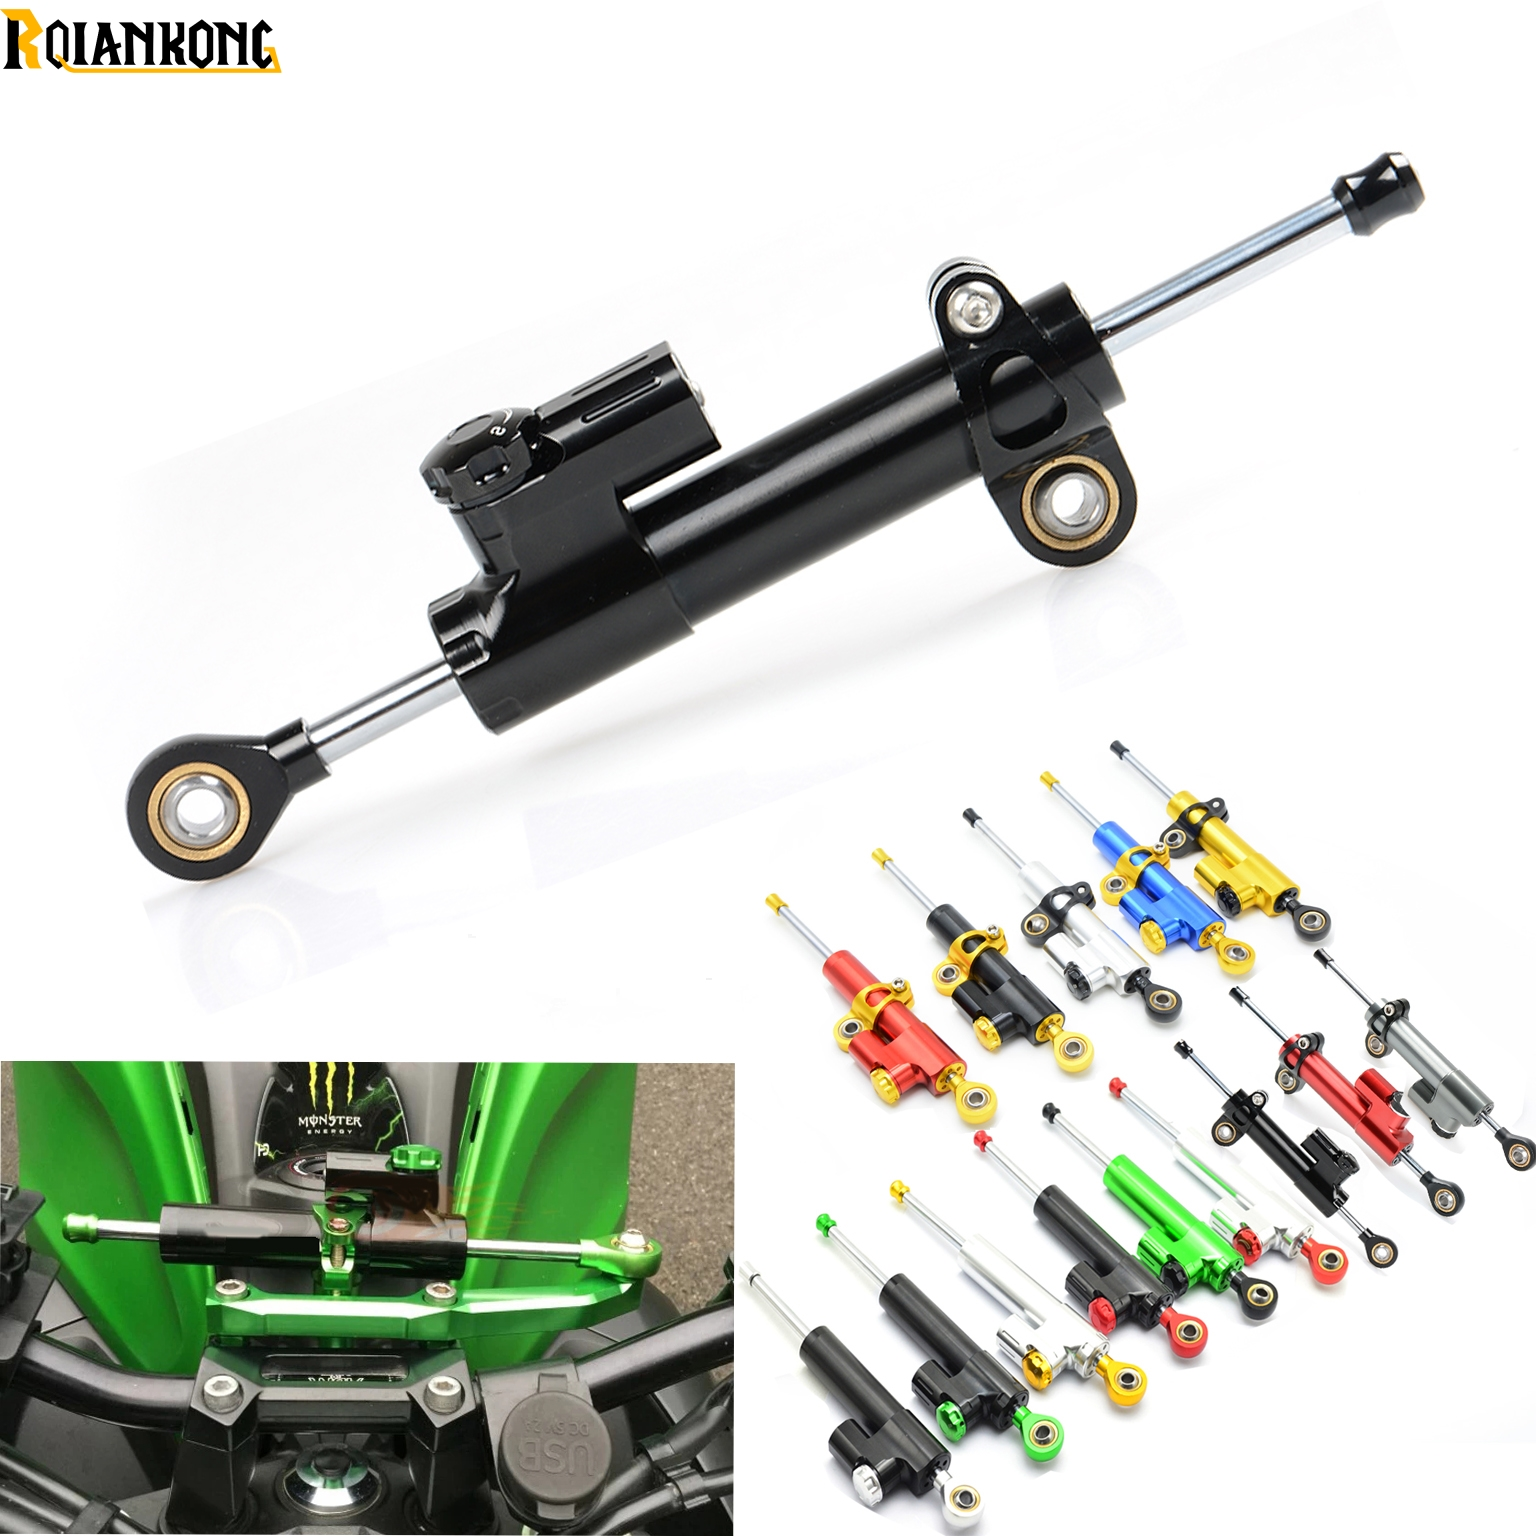 CNC Aluminum Motorcycle Steering Damper Stabilizer Linear Safe Control for KTM 200 250 390 690 990 Duke RC SMC/SMCR Enduro R cnc motorcycle billet rear brake pedal step tips pedal for ktm 690 smc supermotor enduro 690 duke 950 990 adv 125 200 390 duke